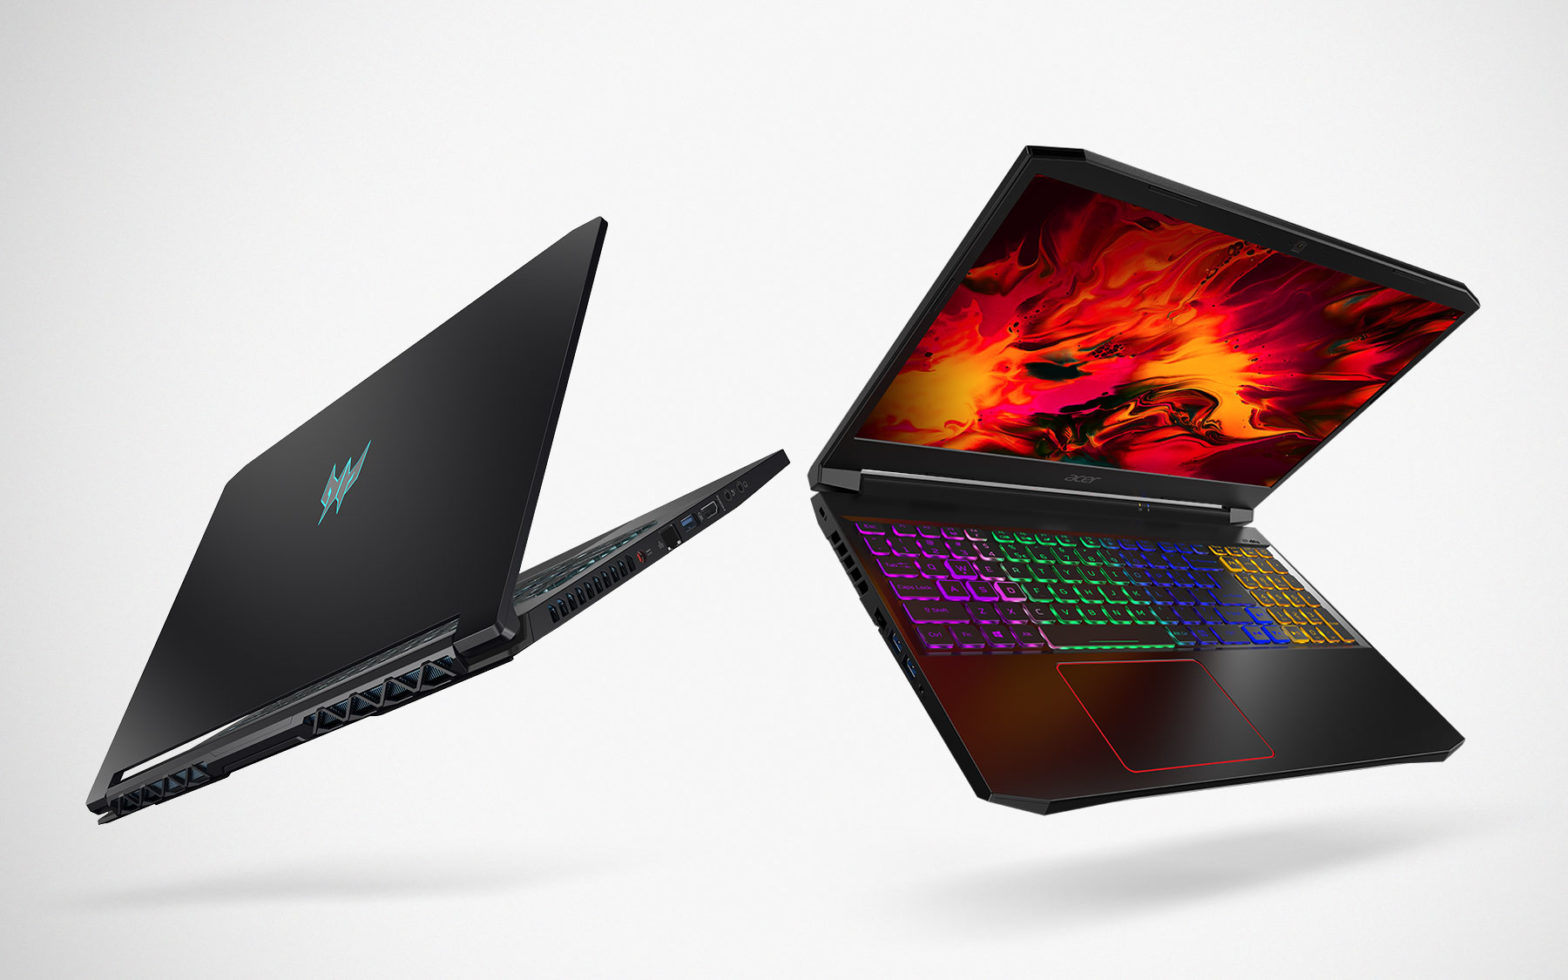 Acer Predator Triton 500 and Nitro 5 Gaming Laptops